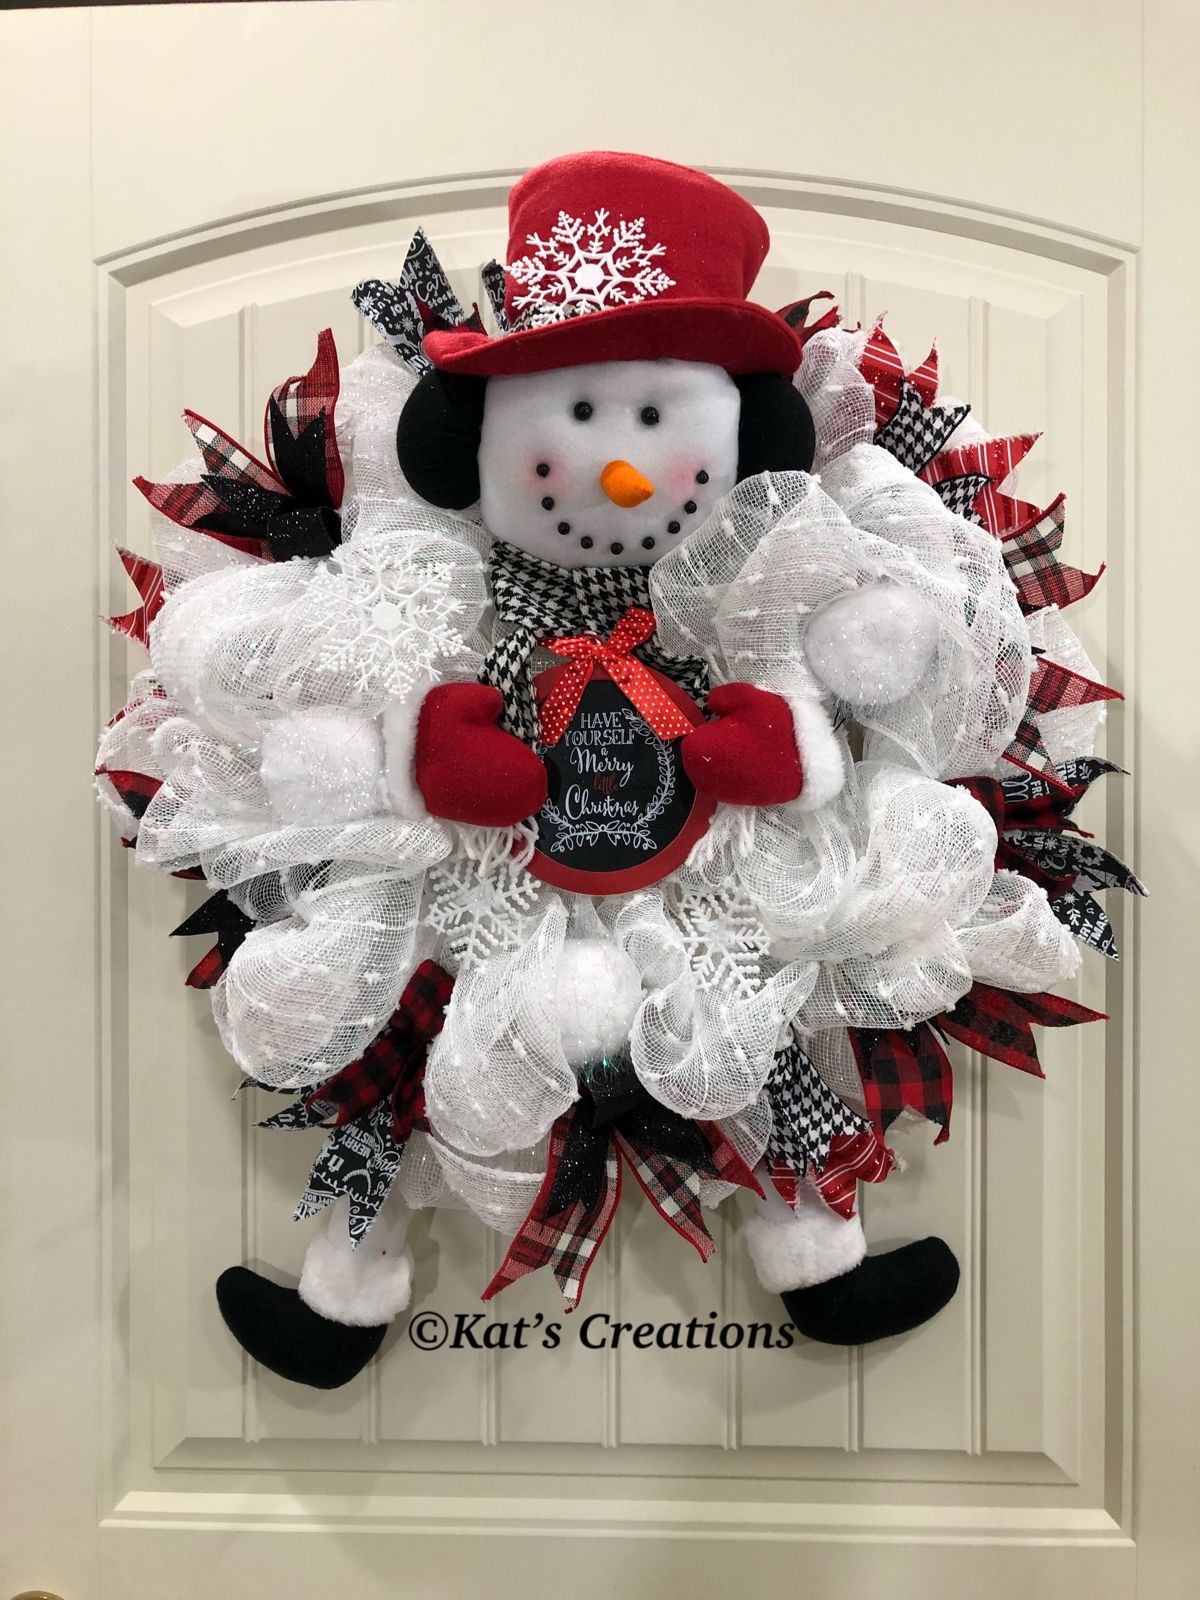 Christmas Snowman Wreath Christmas Crafts For Gifts Xmas Decorations Christmas Wreaths